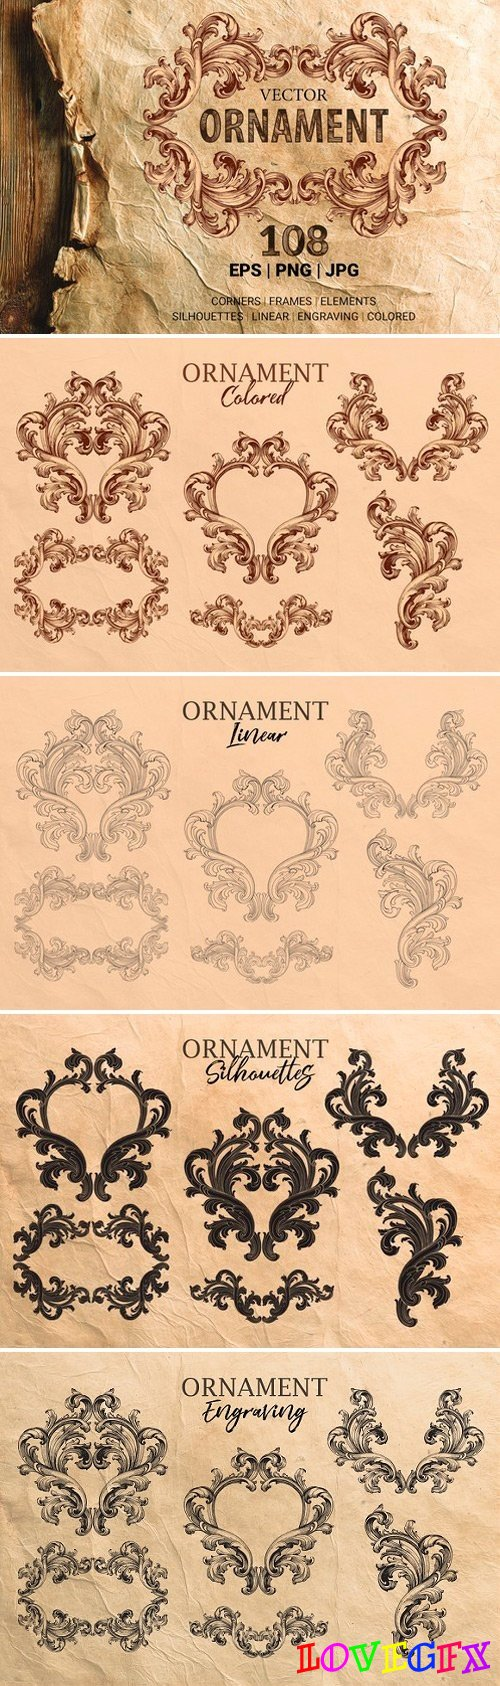 Ornament elements for decorate 2516715